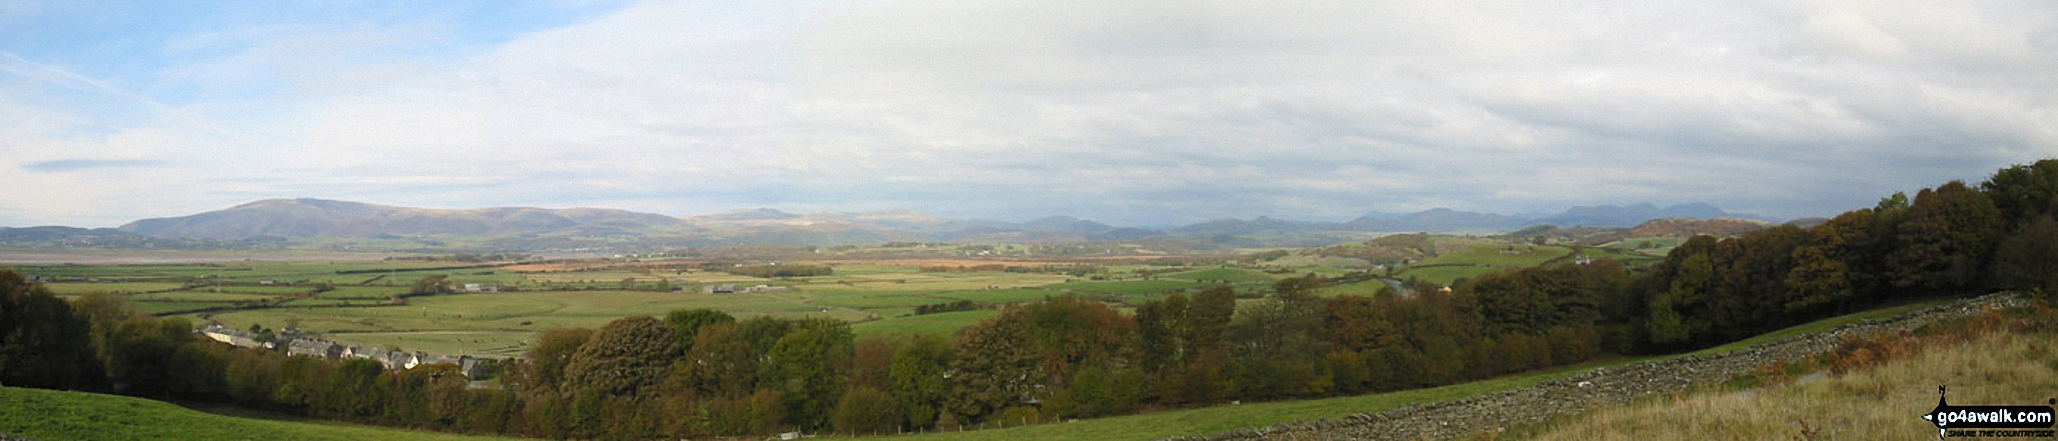 *The Southern Fells from Black Combe to The Old Man of Coniston from Kirkby-in-Furness